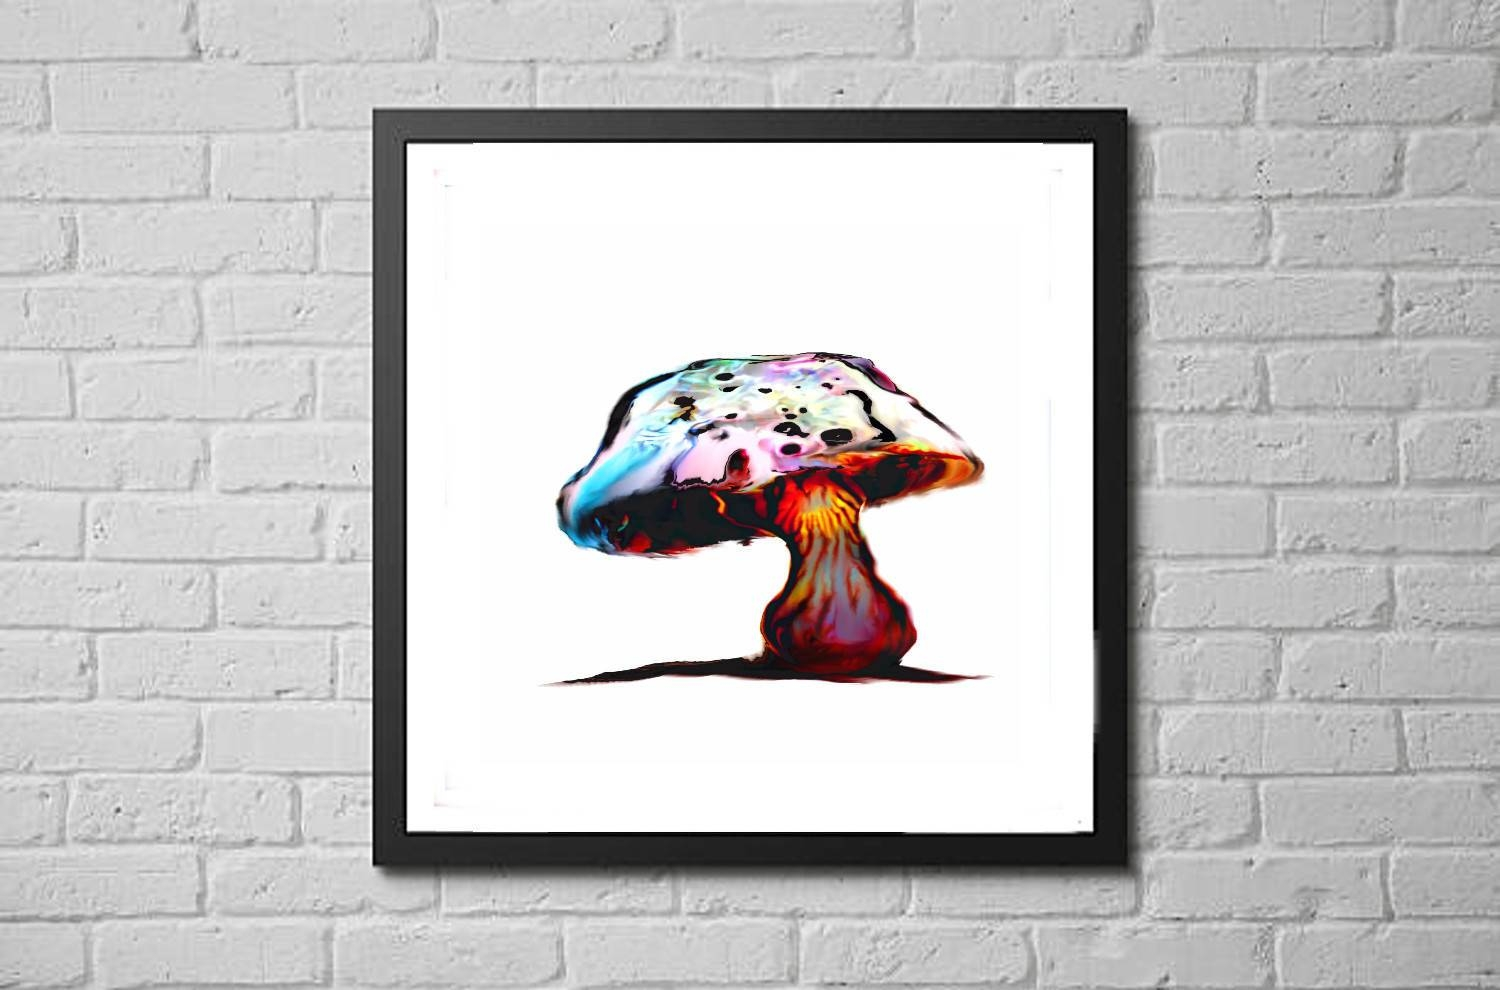 Mushroom Art Print / Nature Fungi Botanical Decor / Trippy Intended For Most Recently Released Mushroom Wall Art (View 12 of 20)